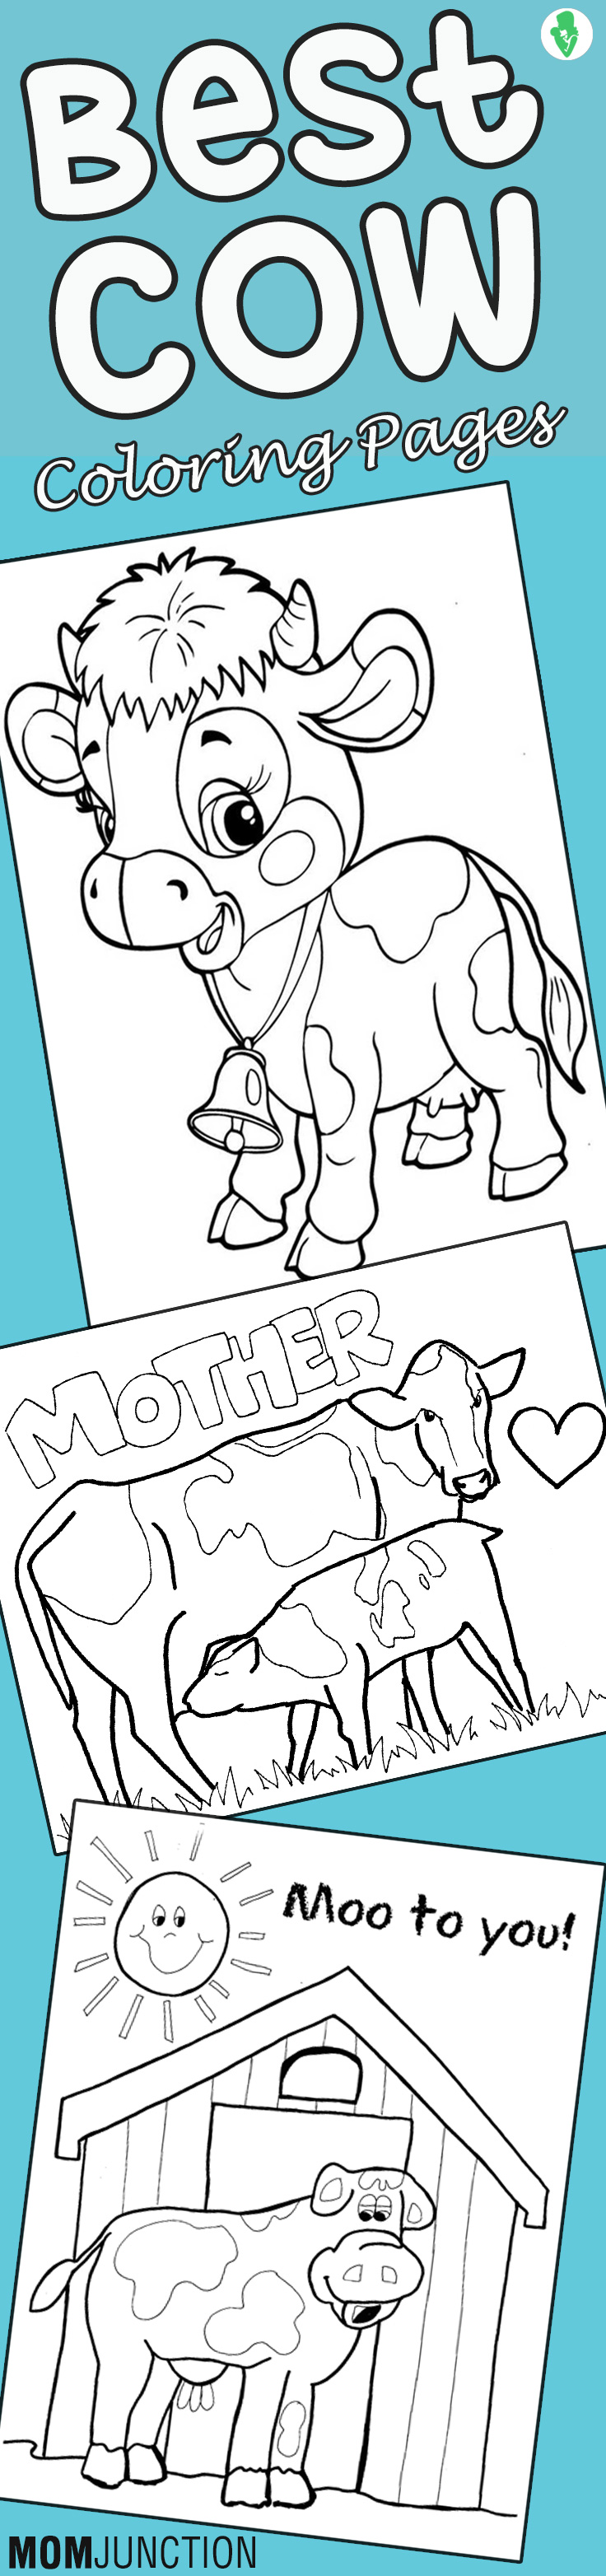 Co co coloring sheets to print of cows - Co Co Coloring Sheets To Print Of Cows 46